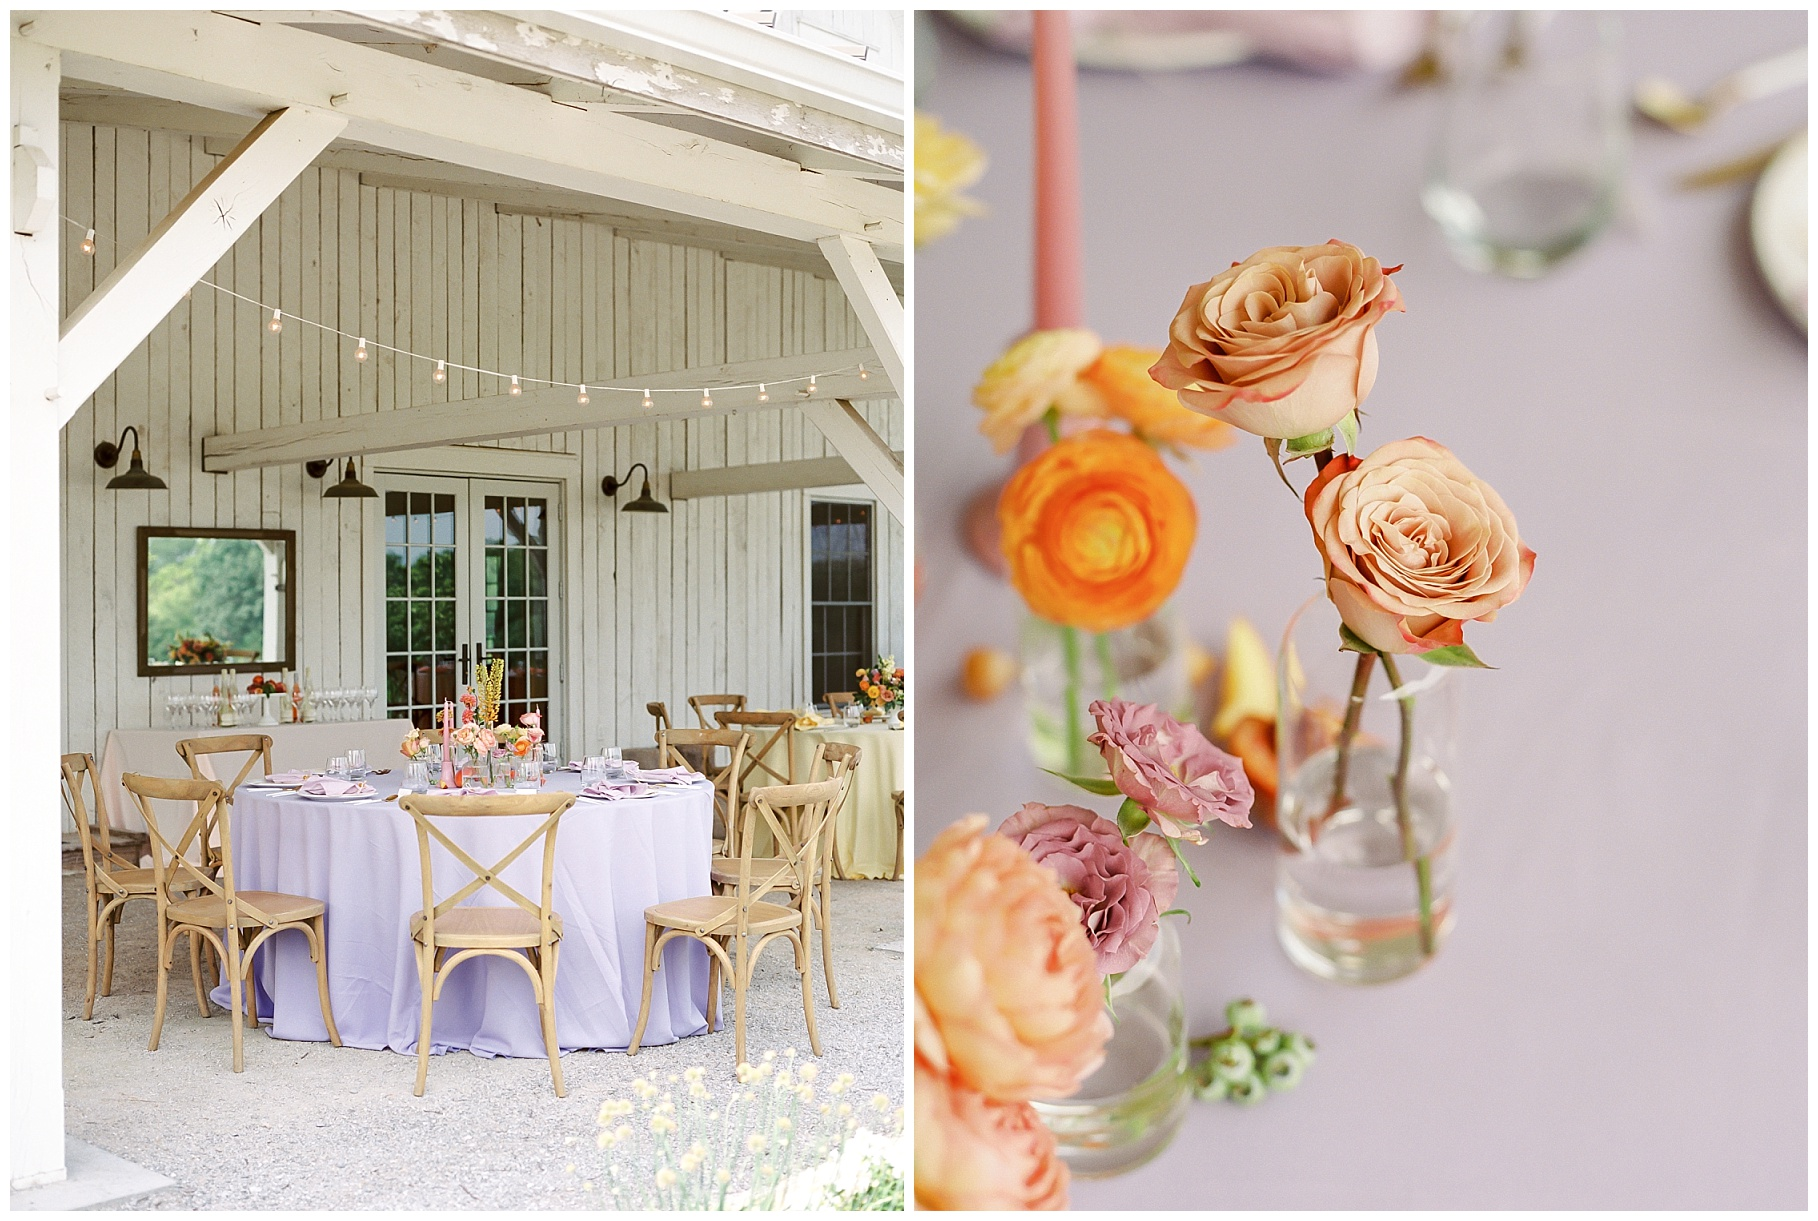 Late Summer Wedding With Pastel Toned Soiree at Blue Bell Farm by Kelsi Kliethermes Photography Best Columbia Missouri Wedding Photographer_0047.jpg